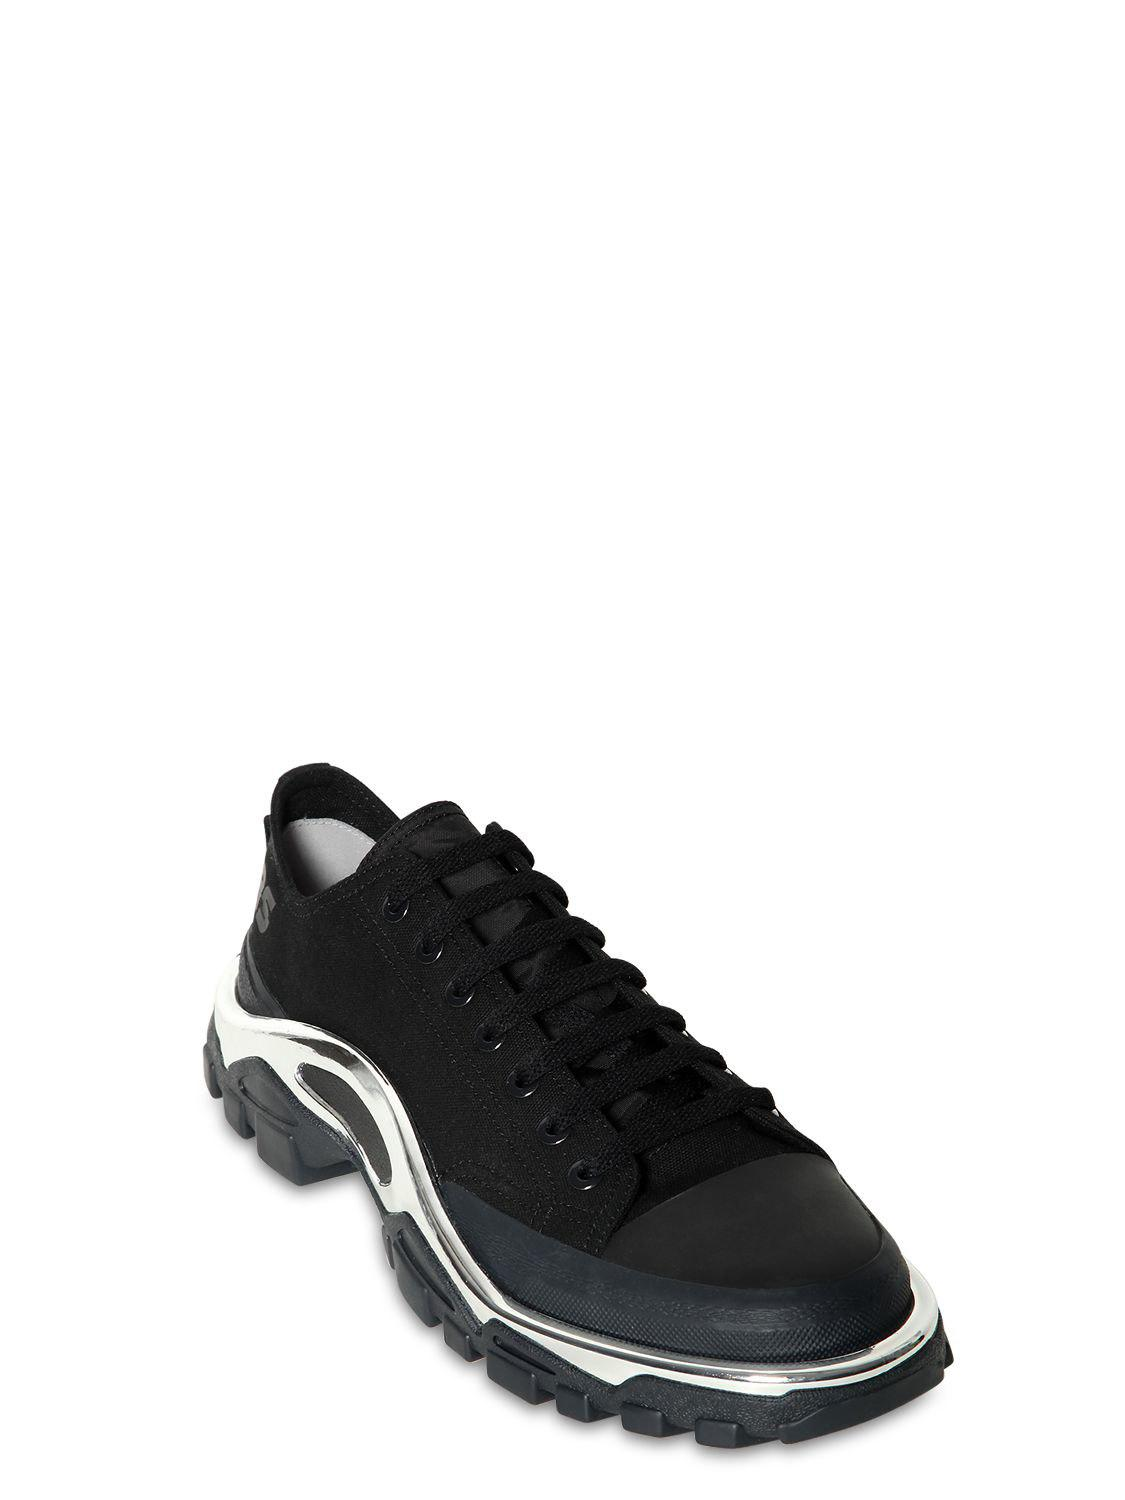 Adidas By Raf Simons - Black Rs Detroit Runner Sneakers for Men - Lyst.  View fullscreen a385dffea